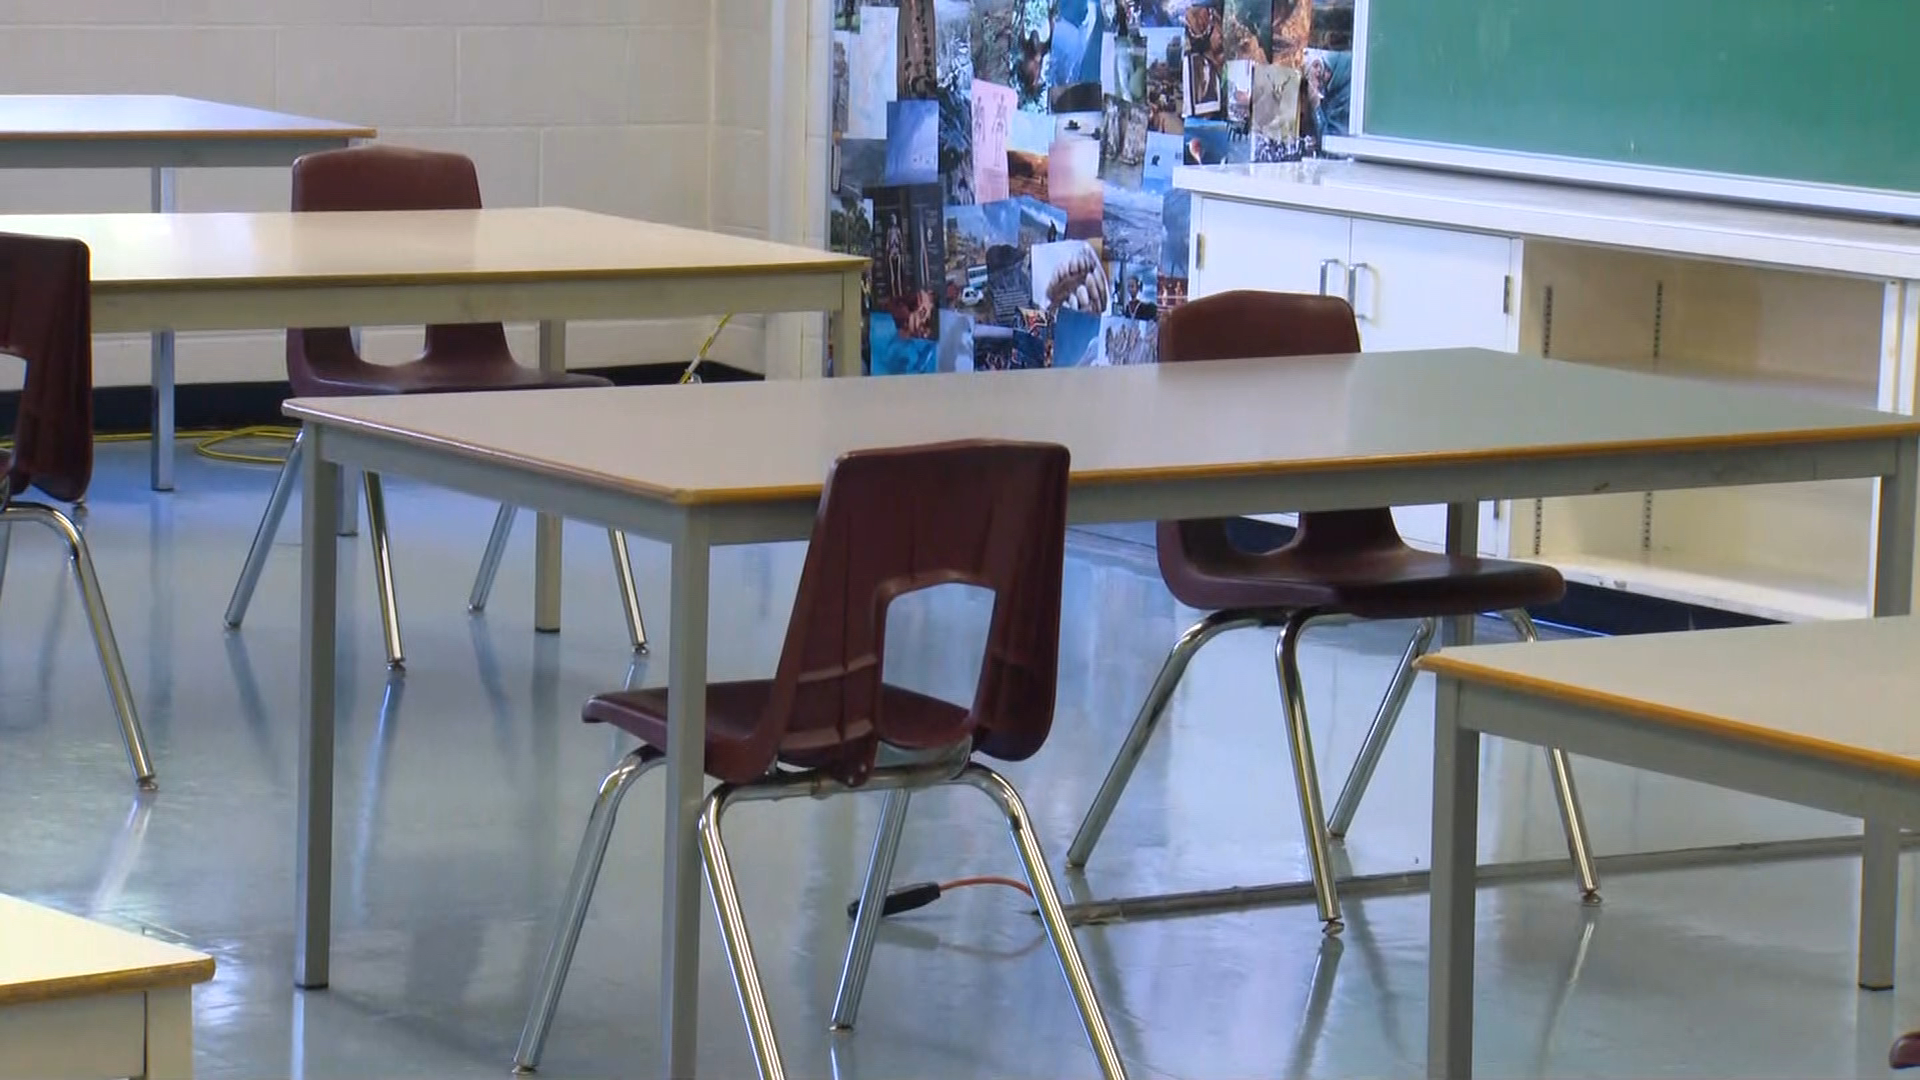 Some Ontario school boards ditch 'quadmester' system for 2021 school year